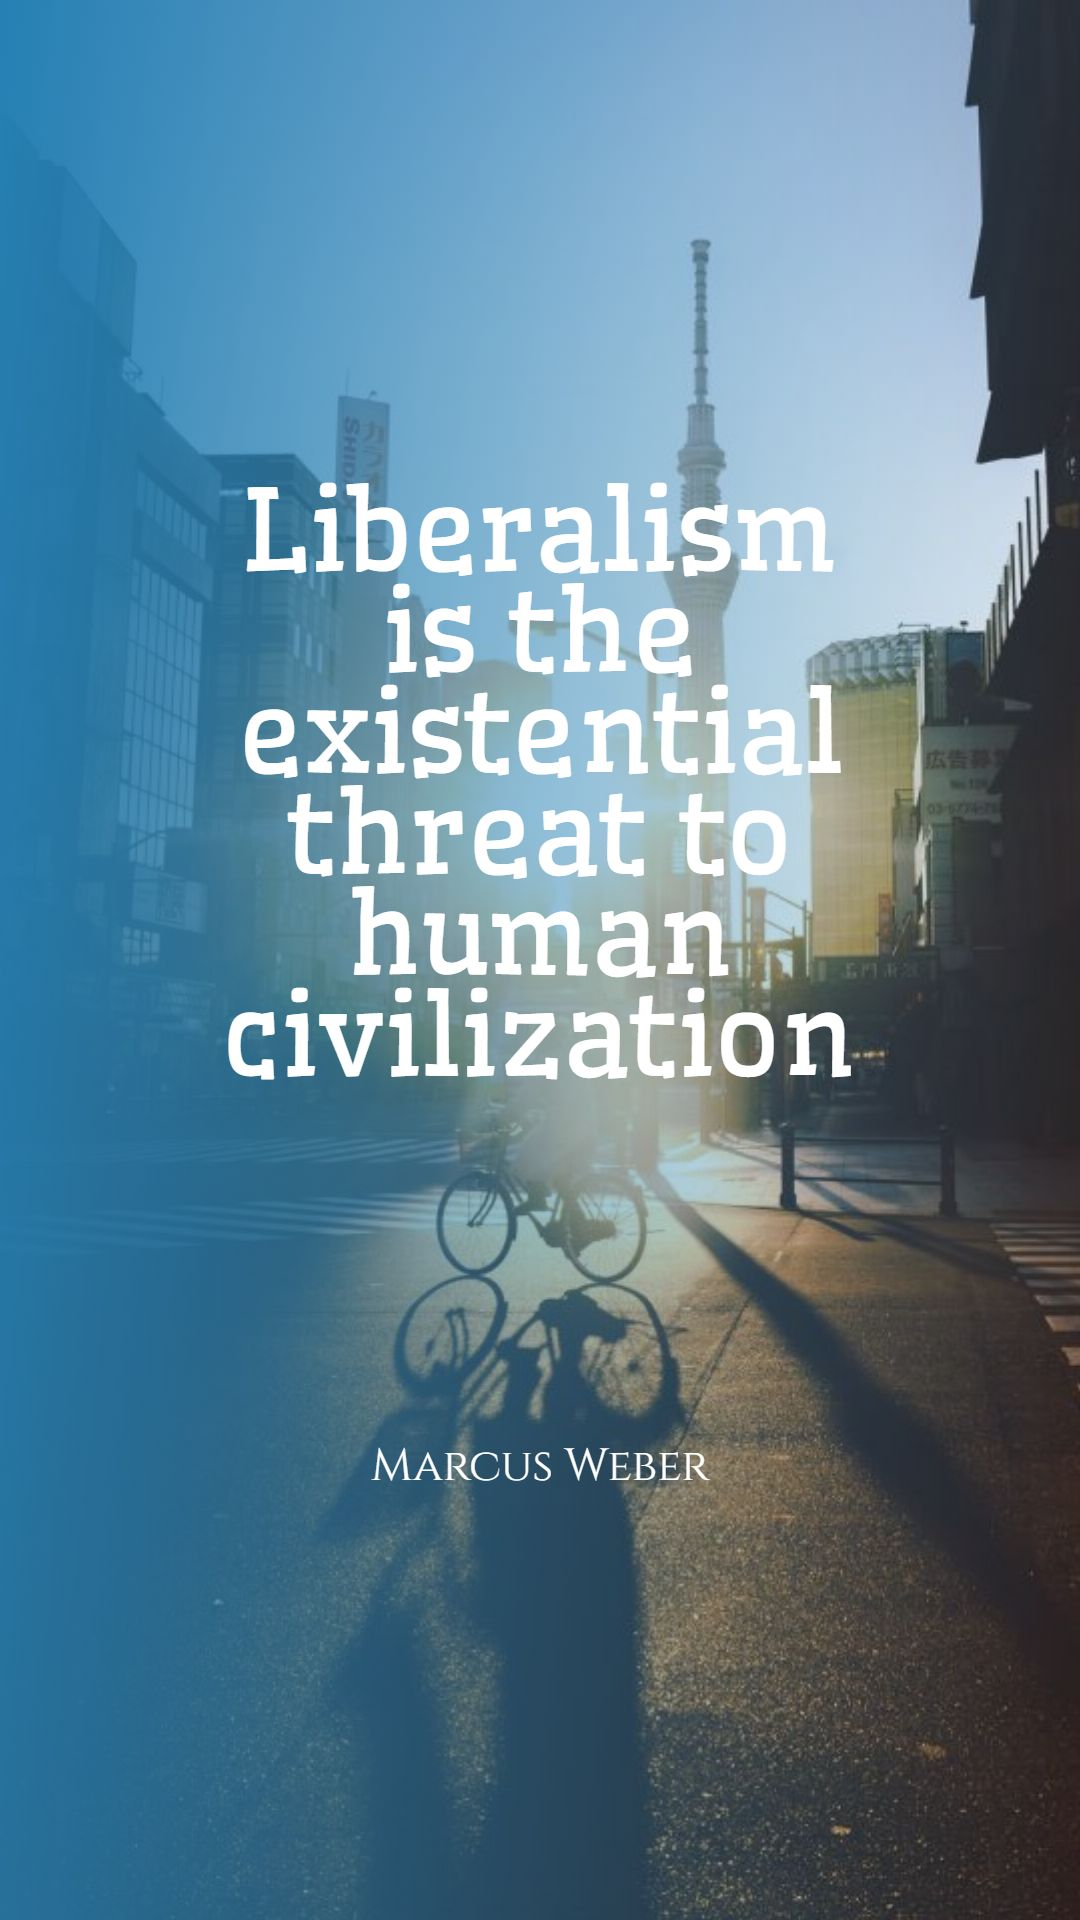 liberalism_is_the_existential_threat